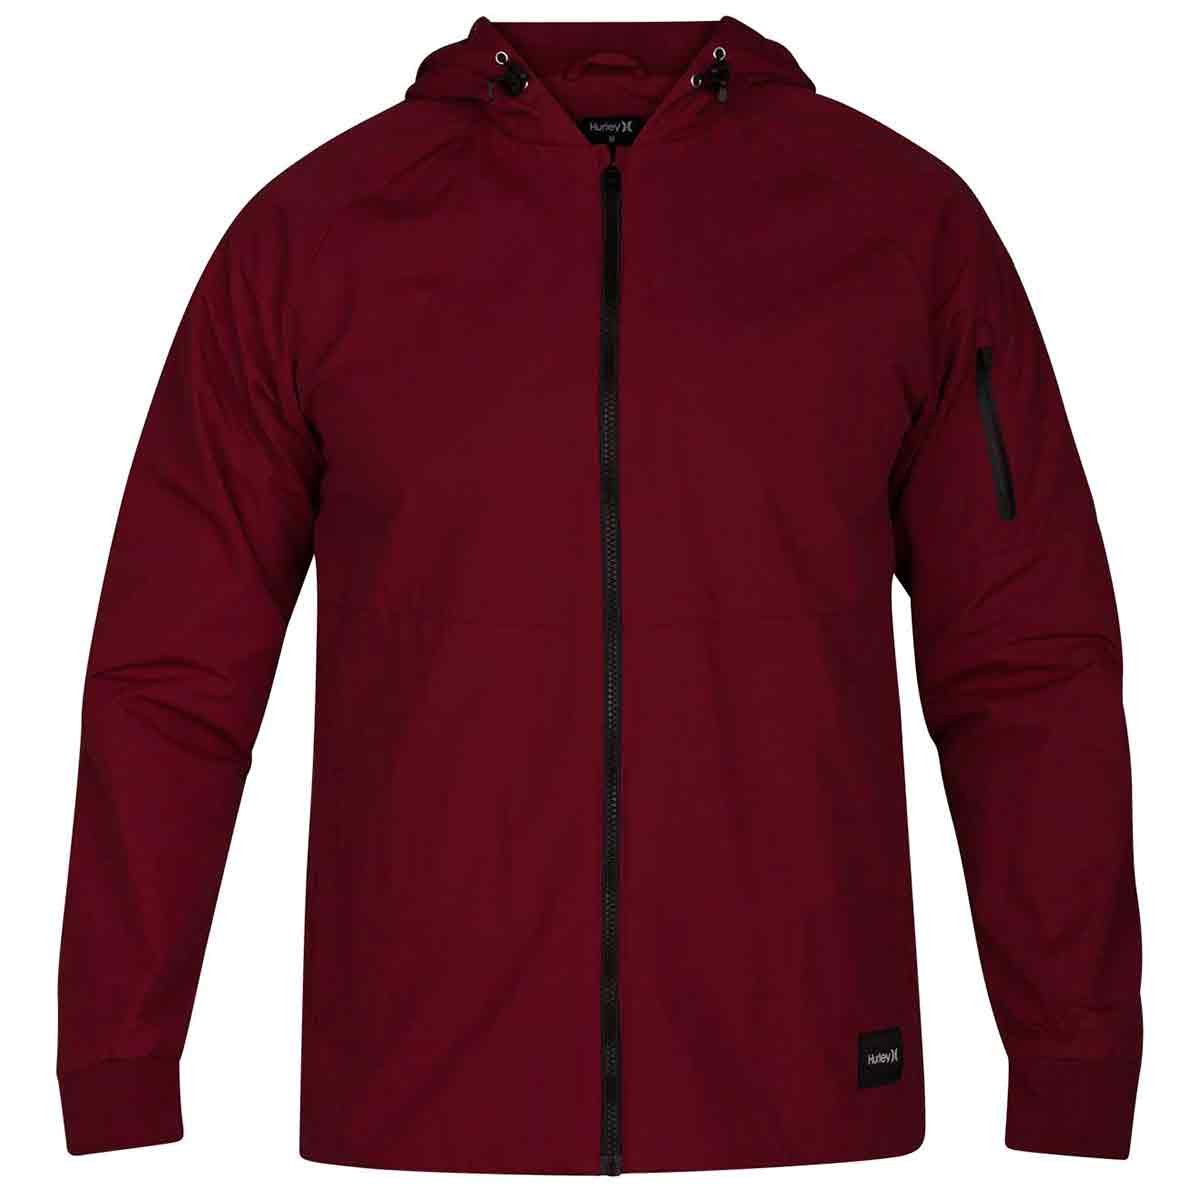 Hurley Guys' Garrison Hooded Jacket - Red, M